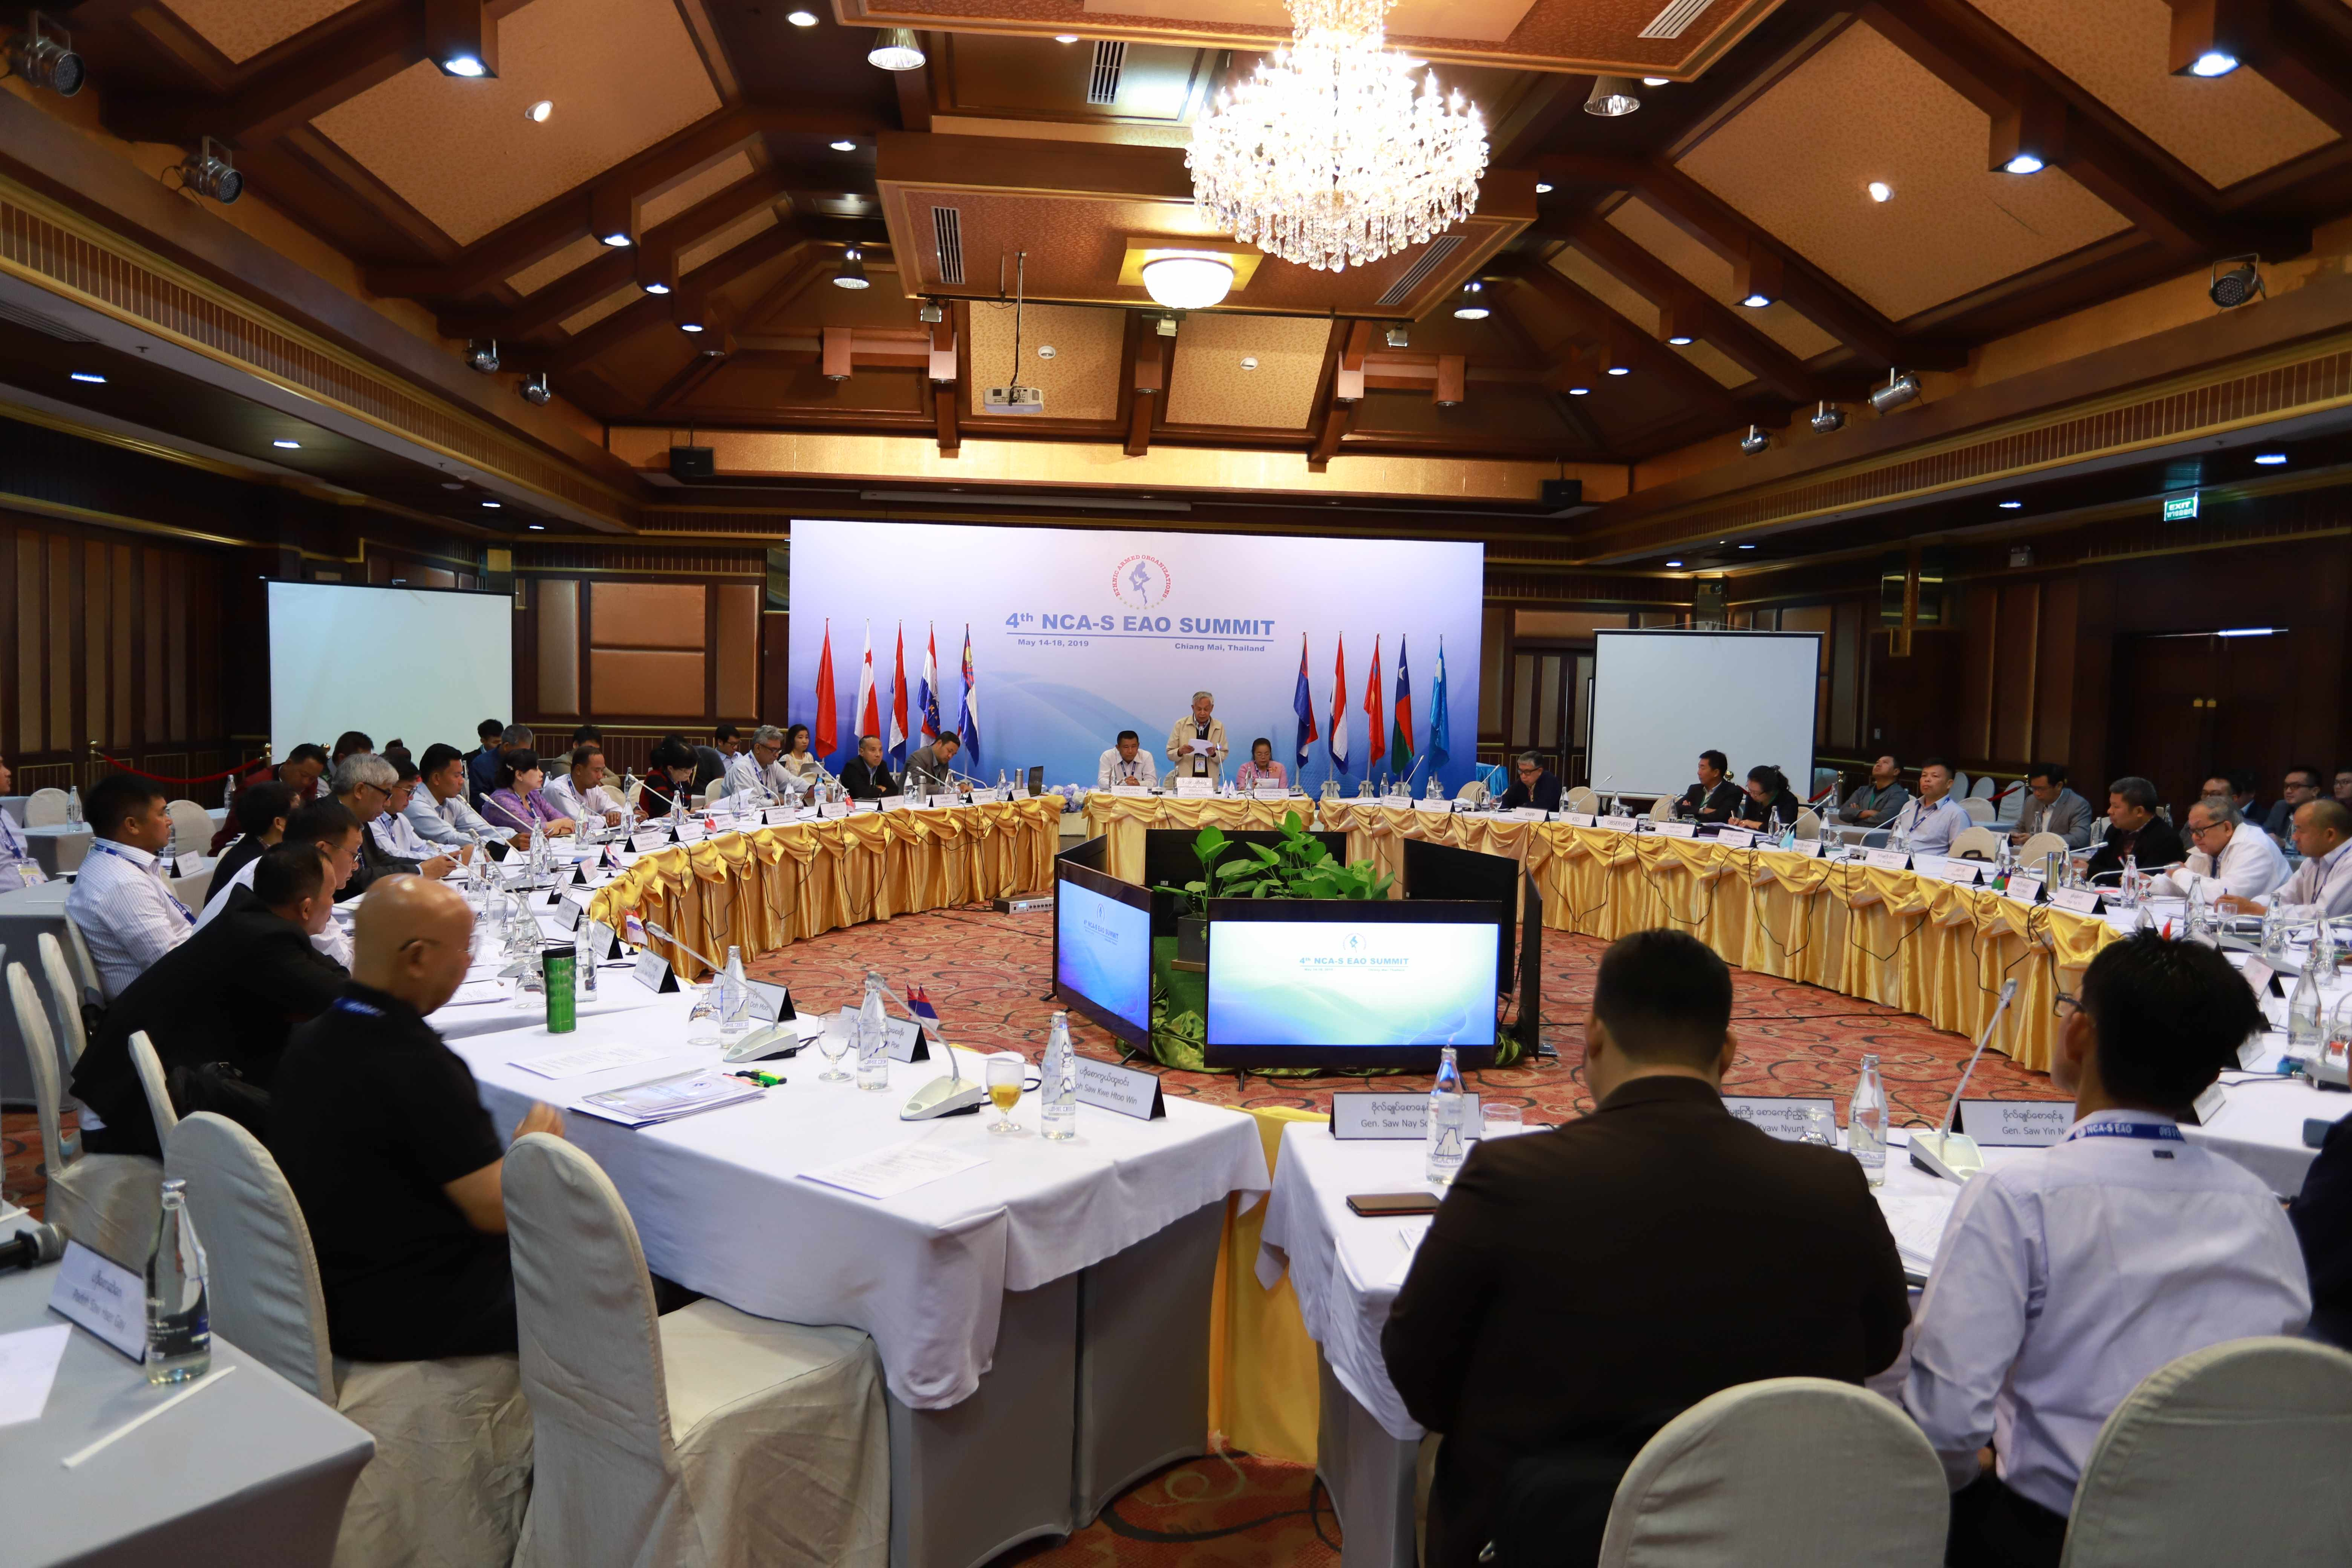 The Statement of 4th NCA-S EAO (1st Session)